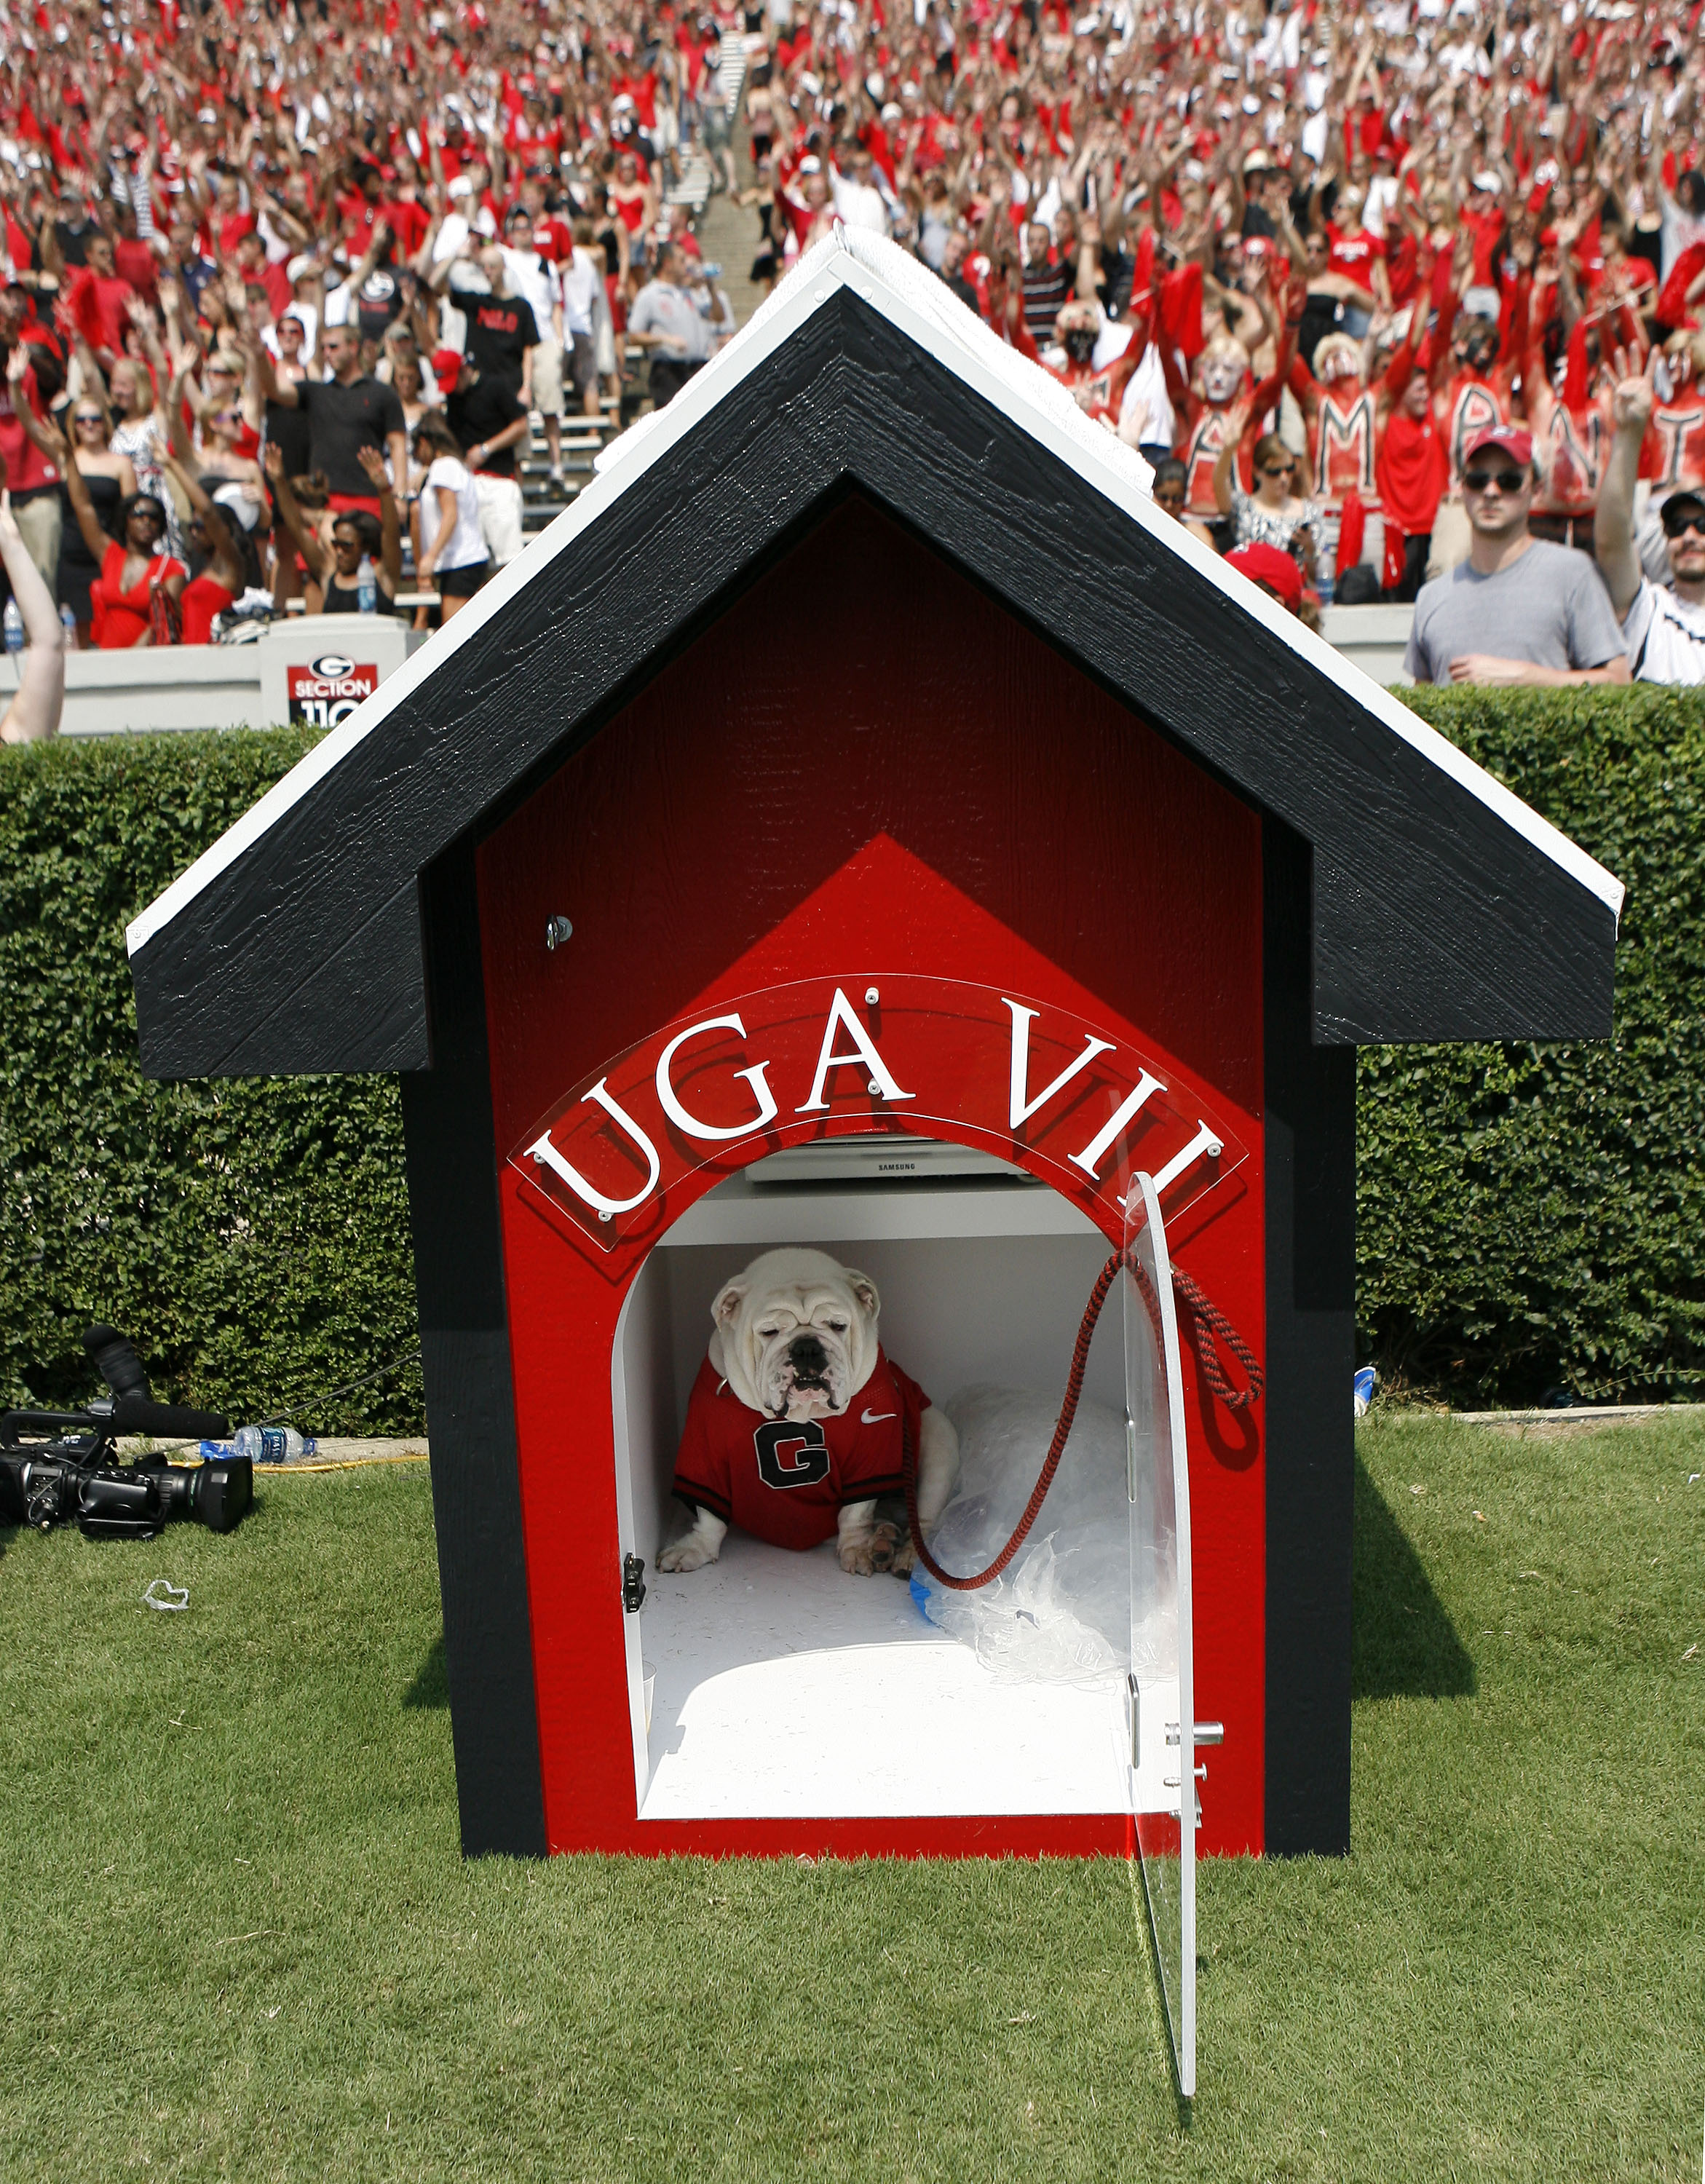 ATHENS - AUGUST 30:  The University of Georgia's new mascot, UGA VII, sits in his doghouse during the game between the Georgia Bulldogs and the Georgia Southern Eagles at Sanford Stadium on August 30, 2008 in Athens, Georgia.  The Bulldogs beat the Eagles